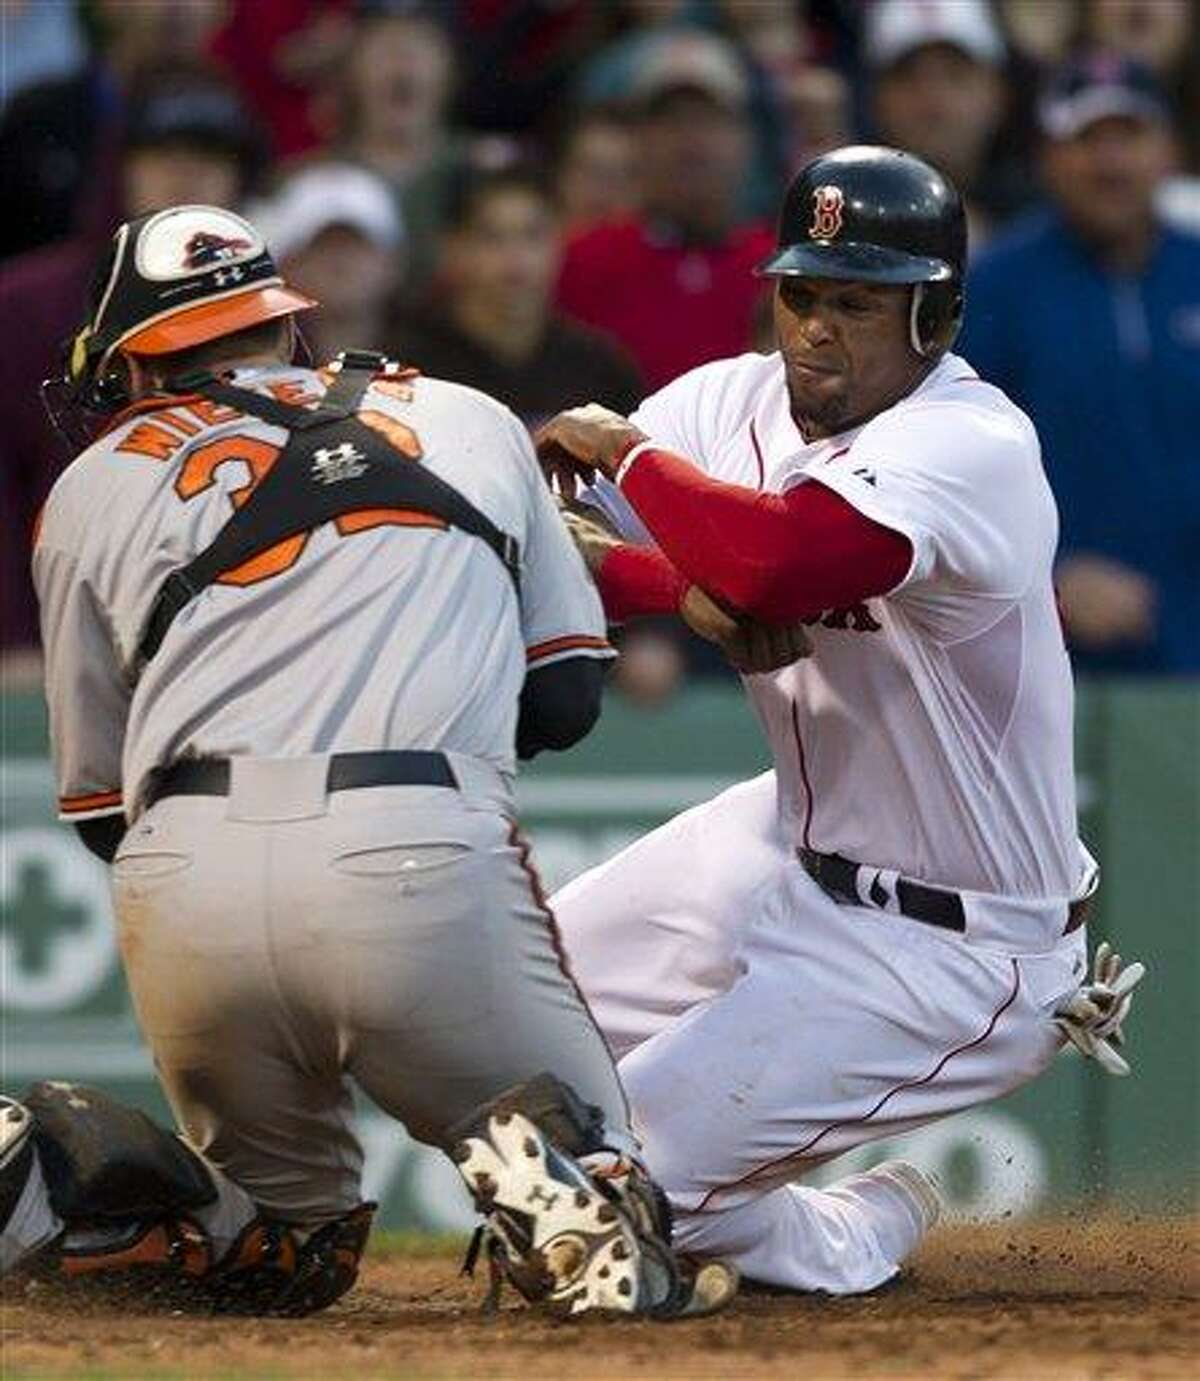 Boston Red Sox's Marlon Byrd, right, is tagged out at home by Baltimore Orioles catcher Matt Wieters, left, in the 16th inning of a baseball game at Fenway Park, in Boston, Sunday, May 6, 2012. The Orioles defeated the Red Sox 9-6 in 17 innings. (AP Photo/Steven Senne)